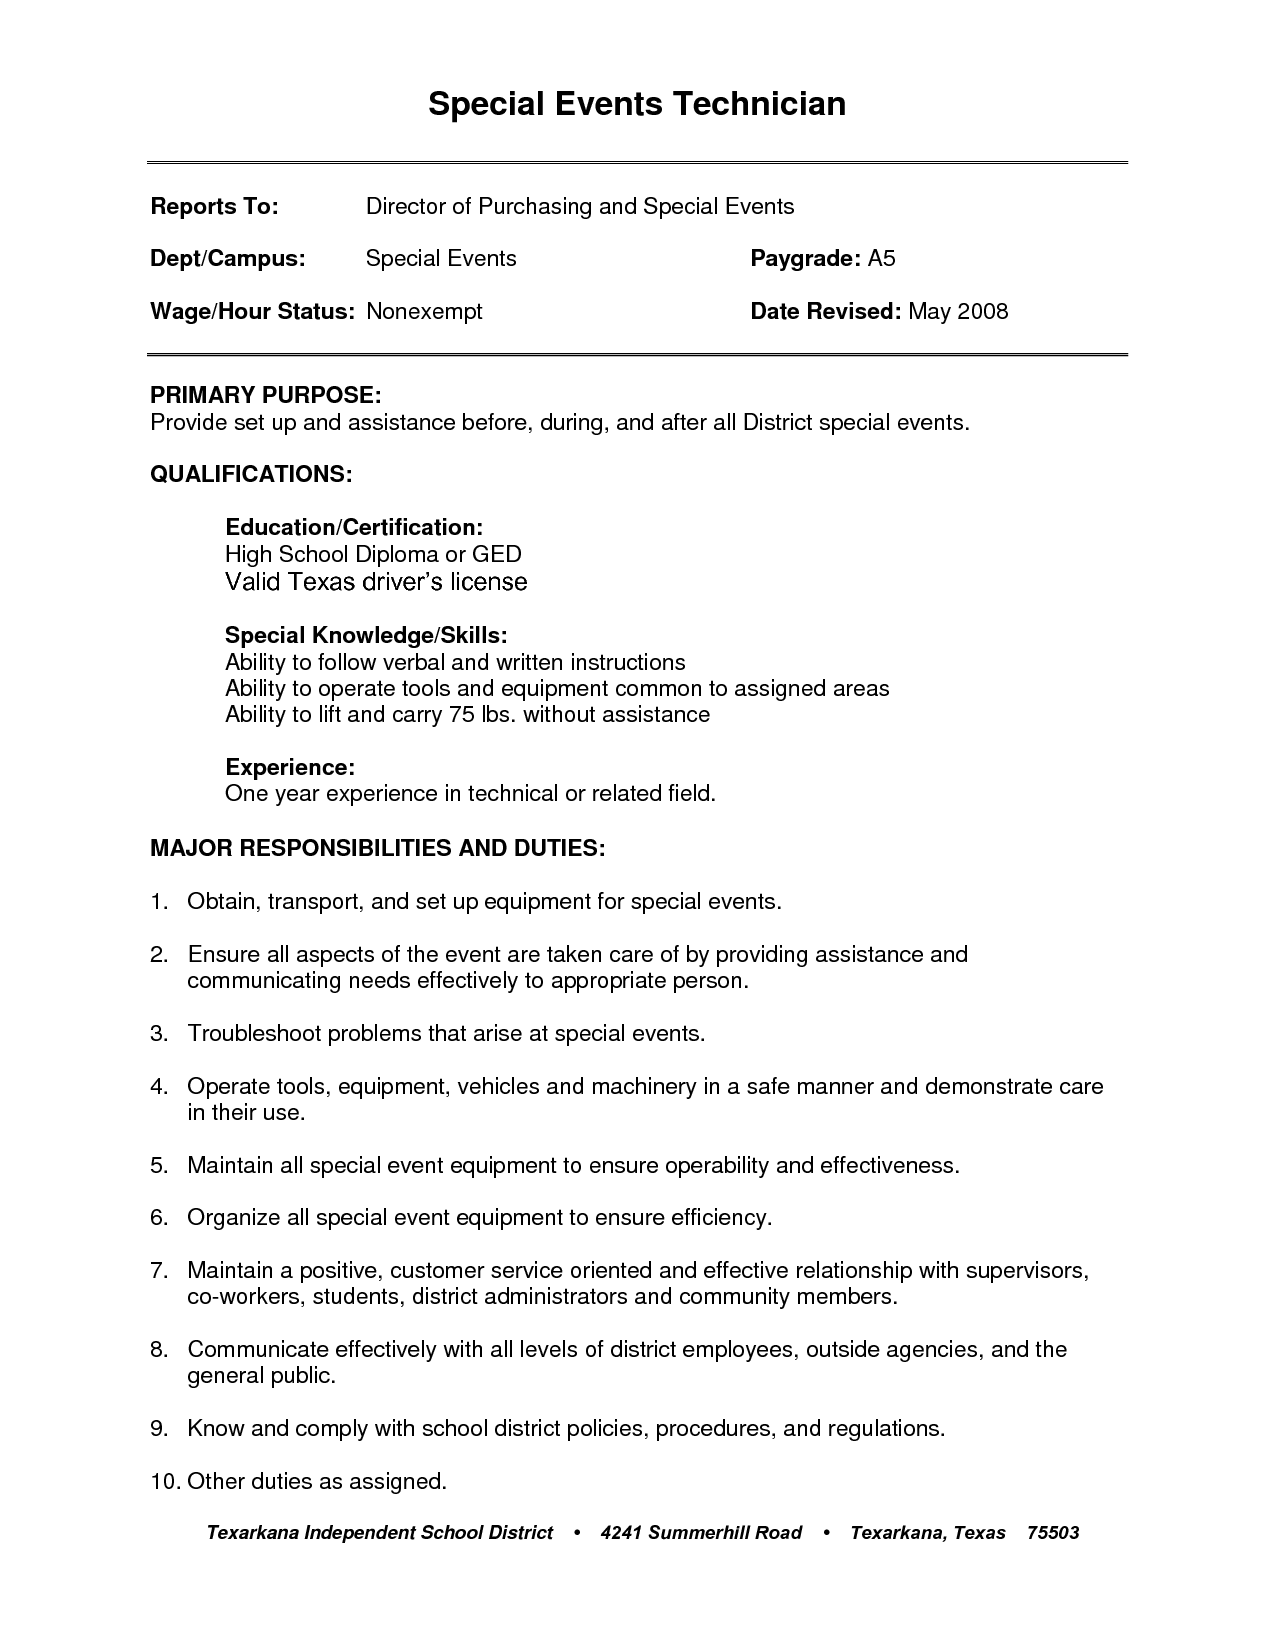 Resume Title Examples Resume For General Job Teen Objective Cover Skills Labor And